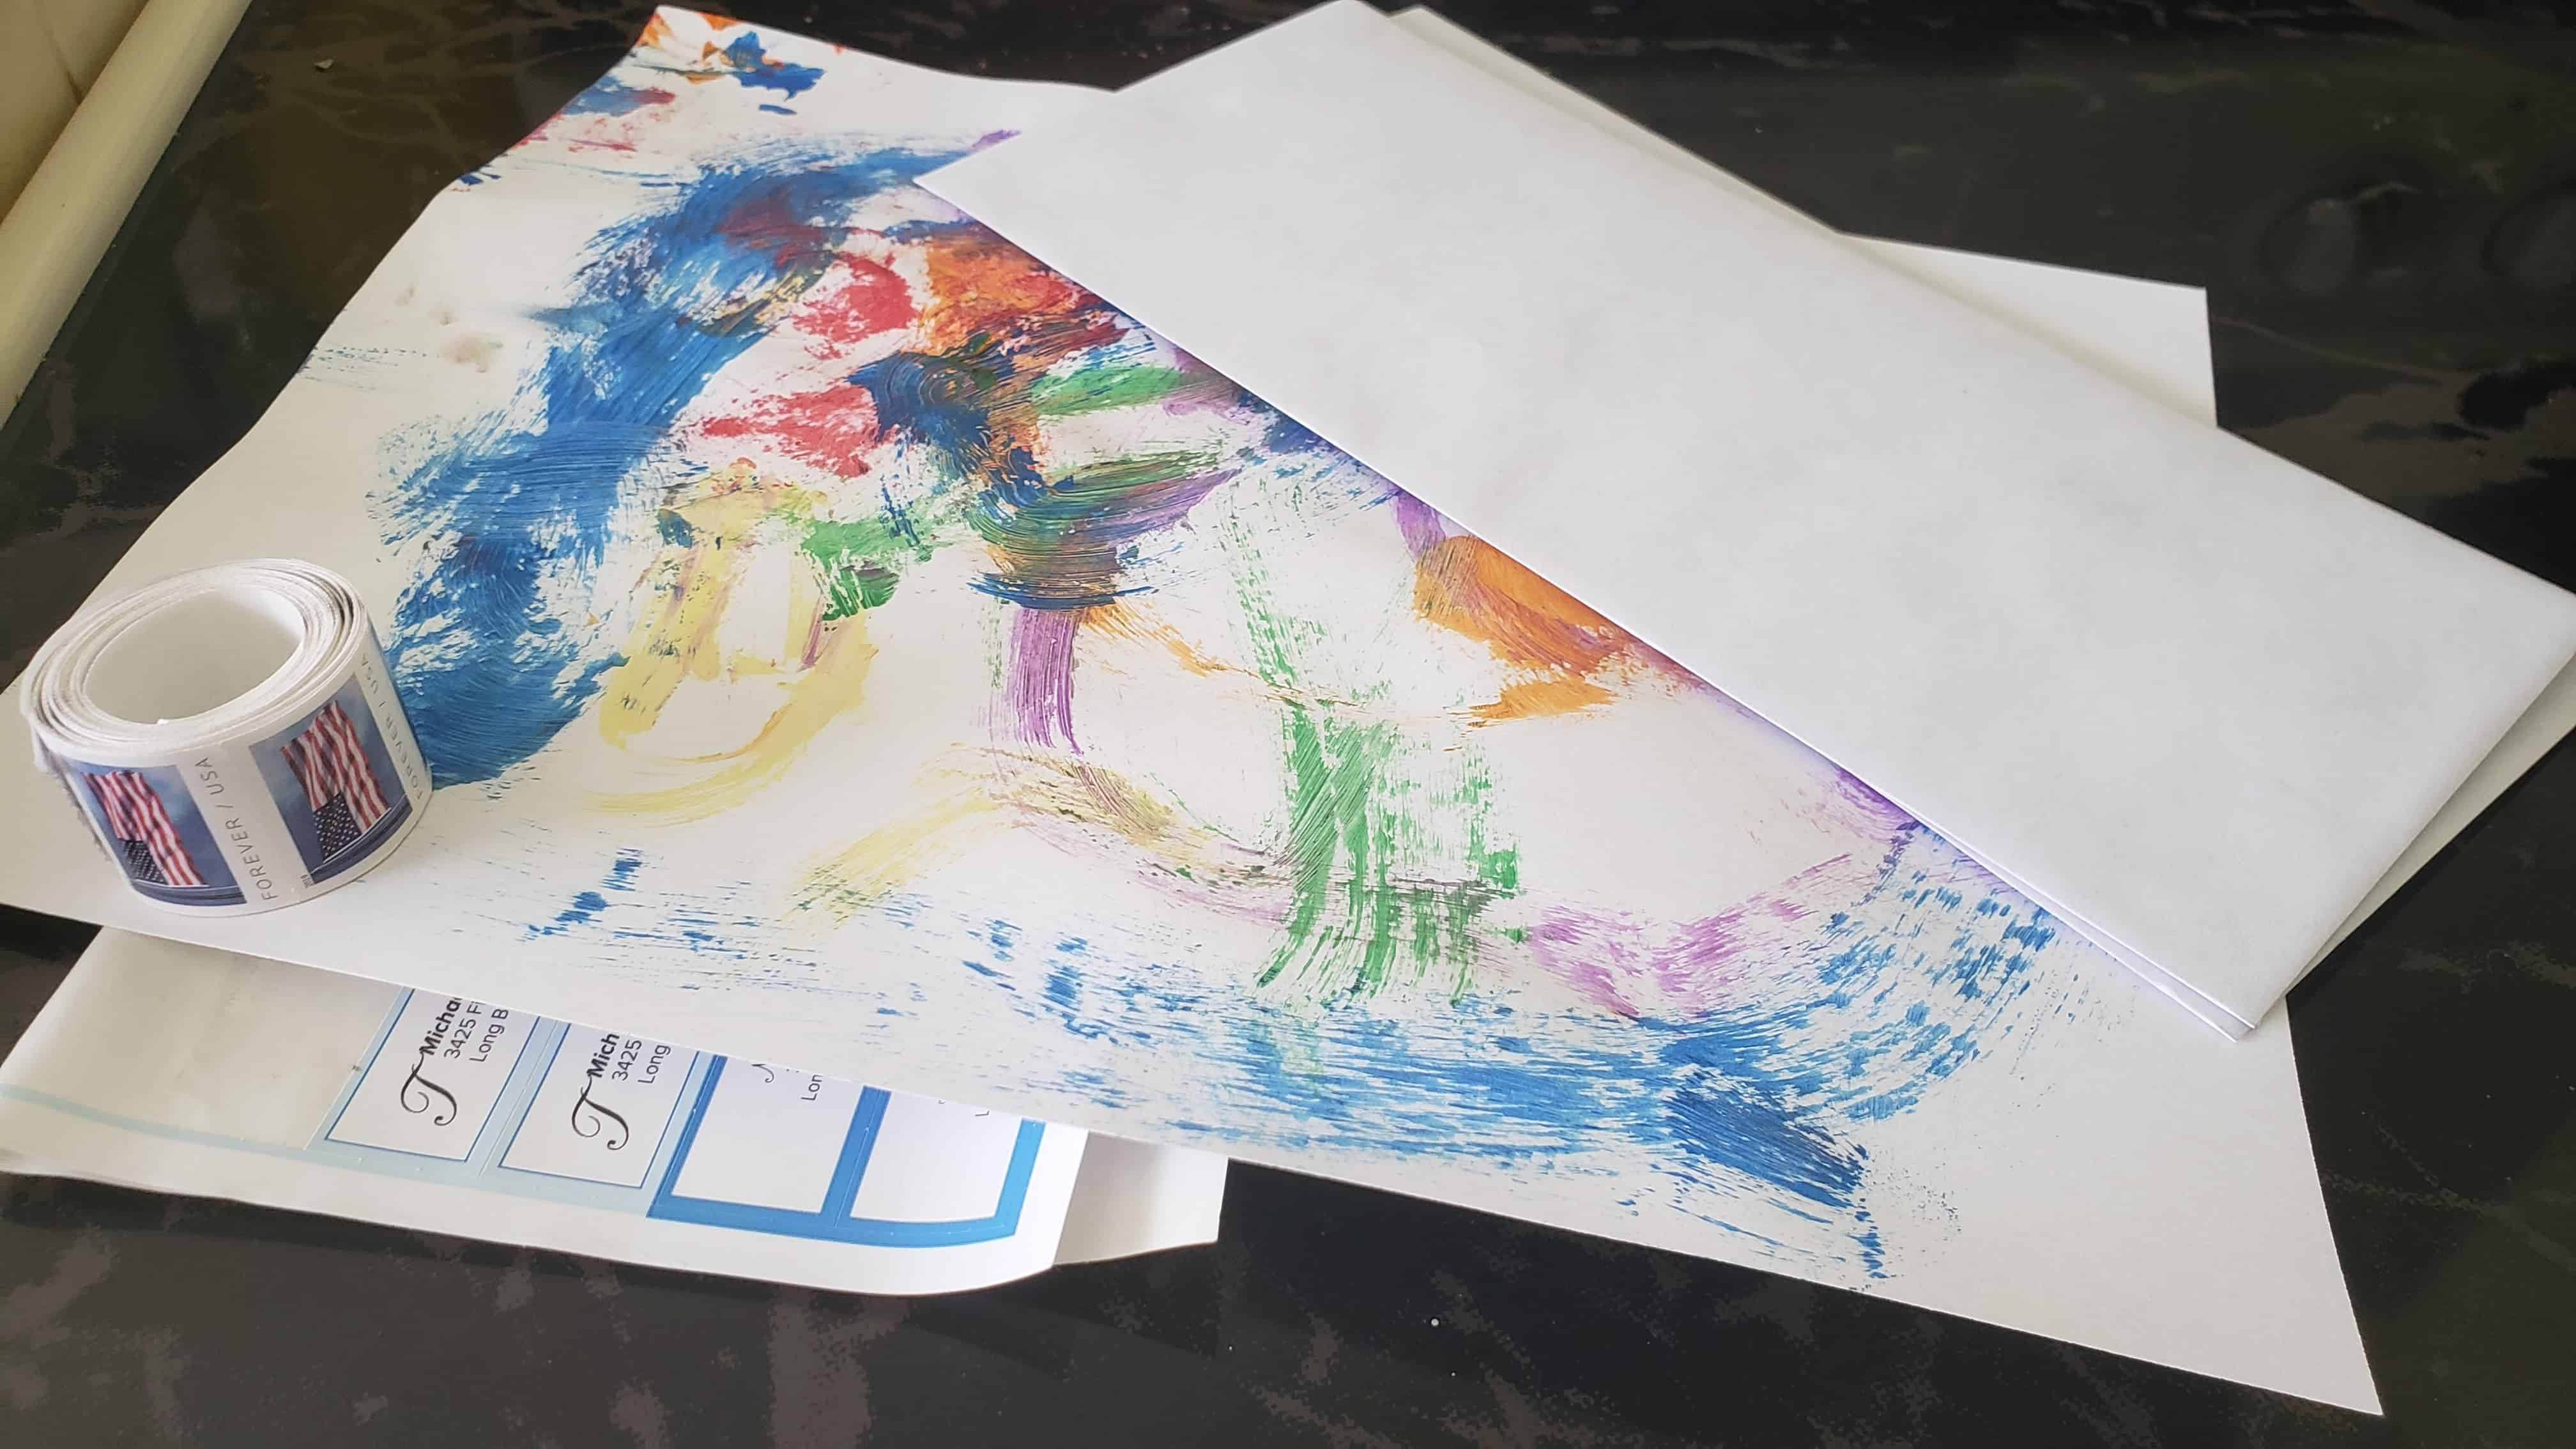 A roll of stamps, an envelope and a sheet of paper with painted artwork on it.